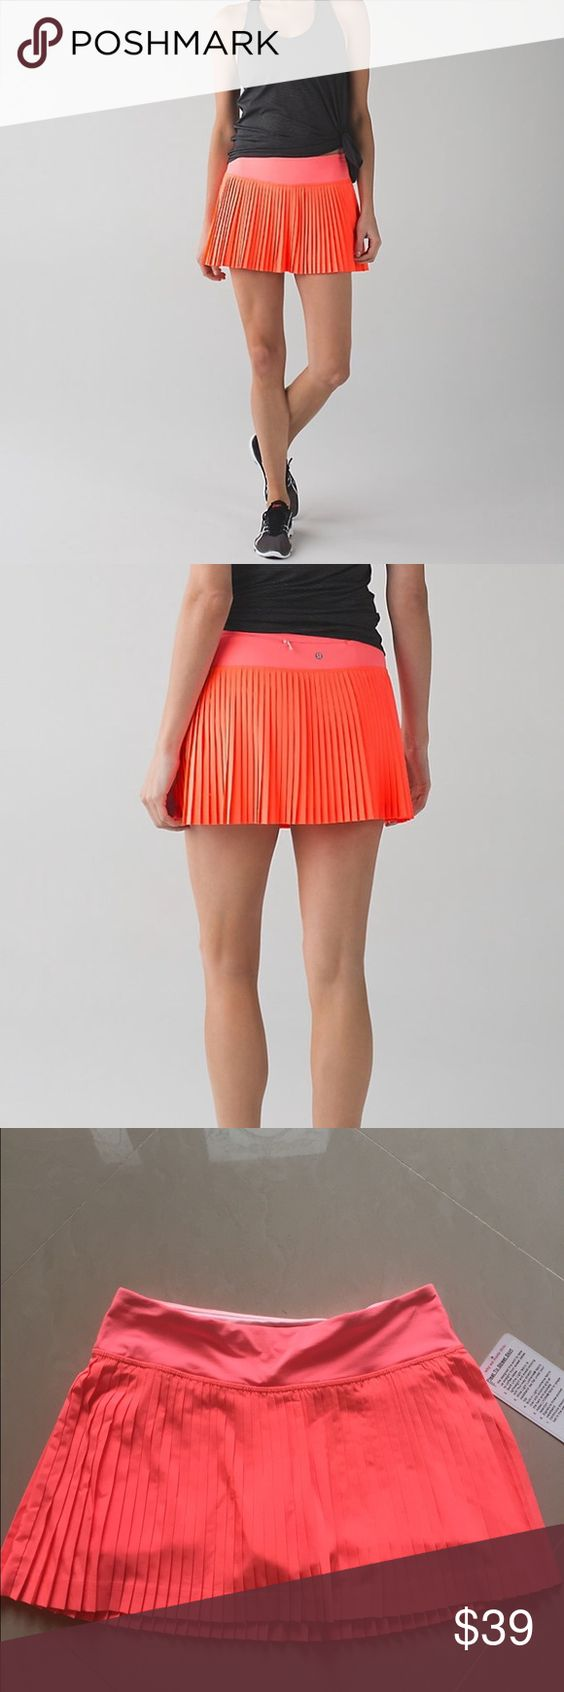 NWT Pleat to Street Skirt II-Size 4 This skirt is brand new with tags. It is super comfortable and looks amazing with any sport top. It looks great from tennis sessions to running trails. With hidden elastic shorts underneath, these are perfect for any occasion! I wore all day while visiting Hong Kong and got so many compliments. Perfect pop of color to your outfits! lululemon athletica Skirts